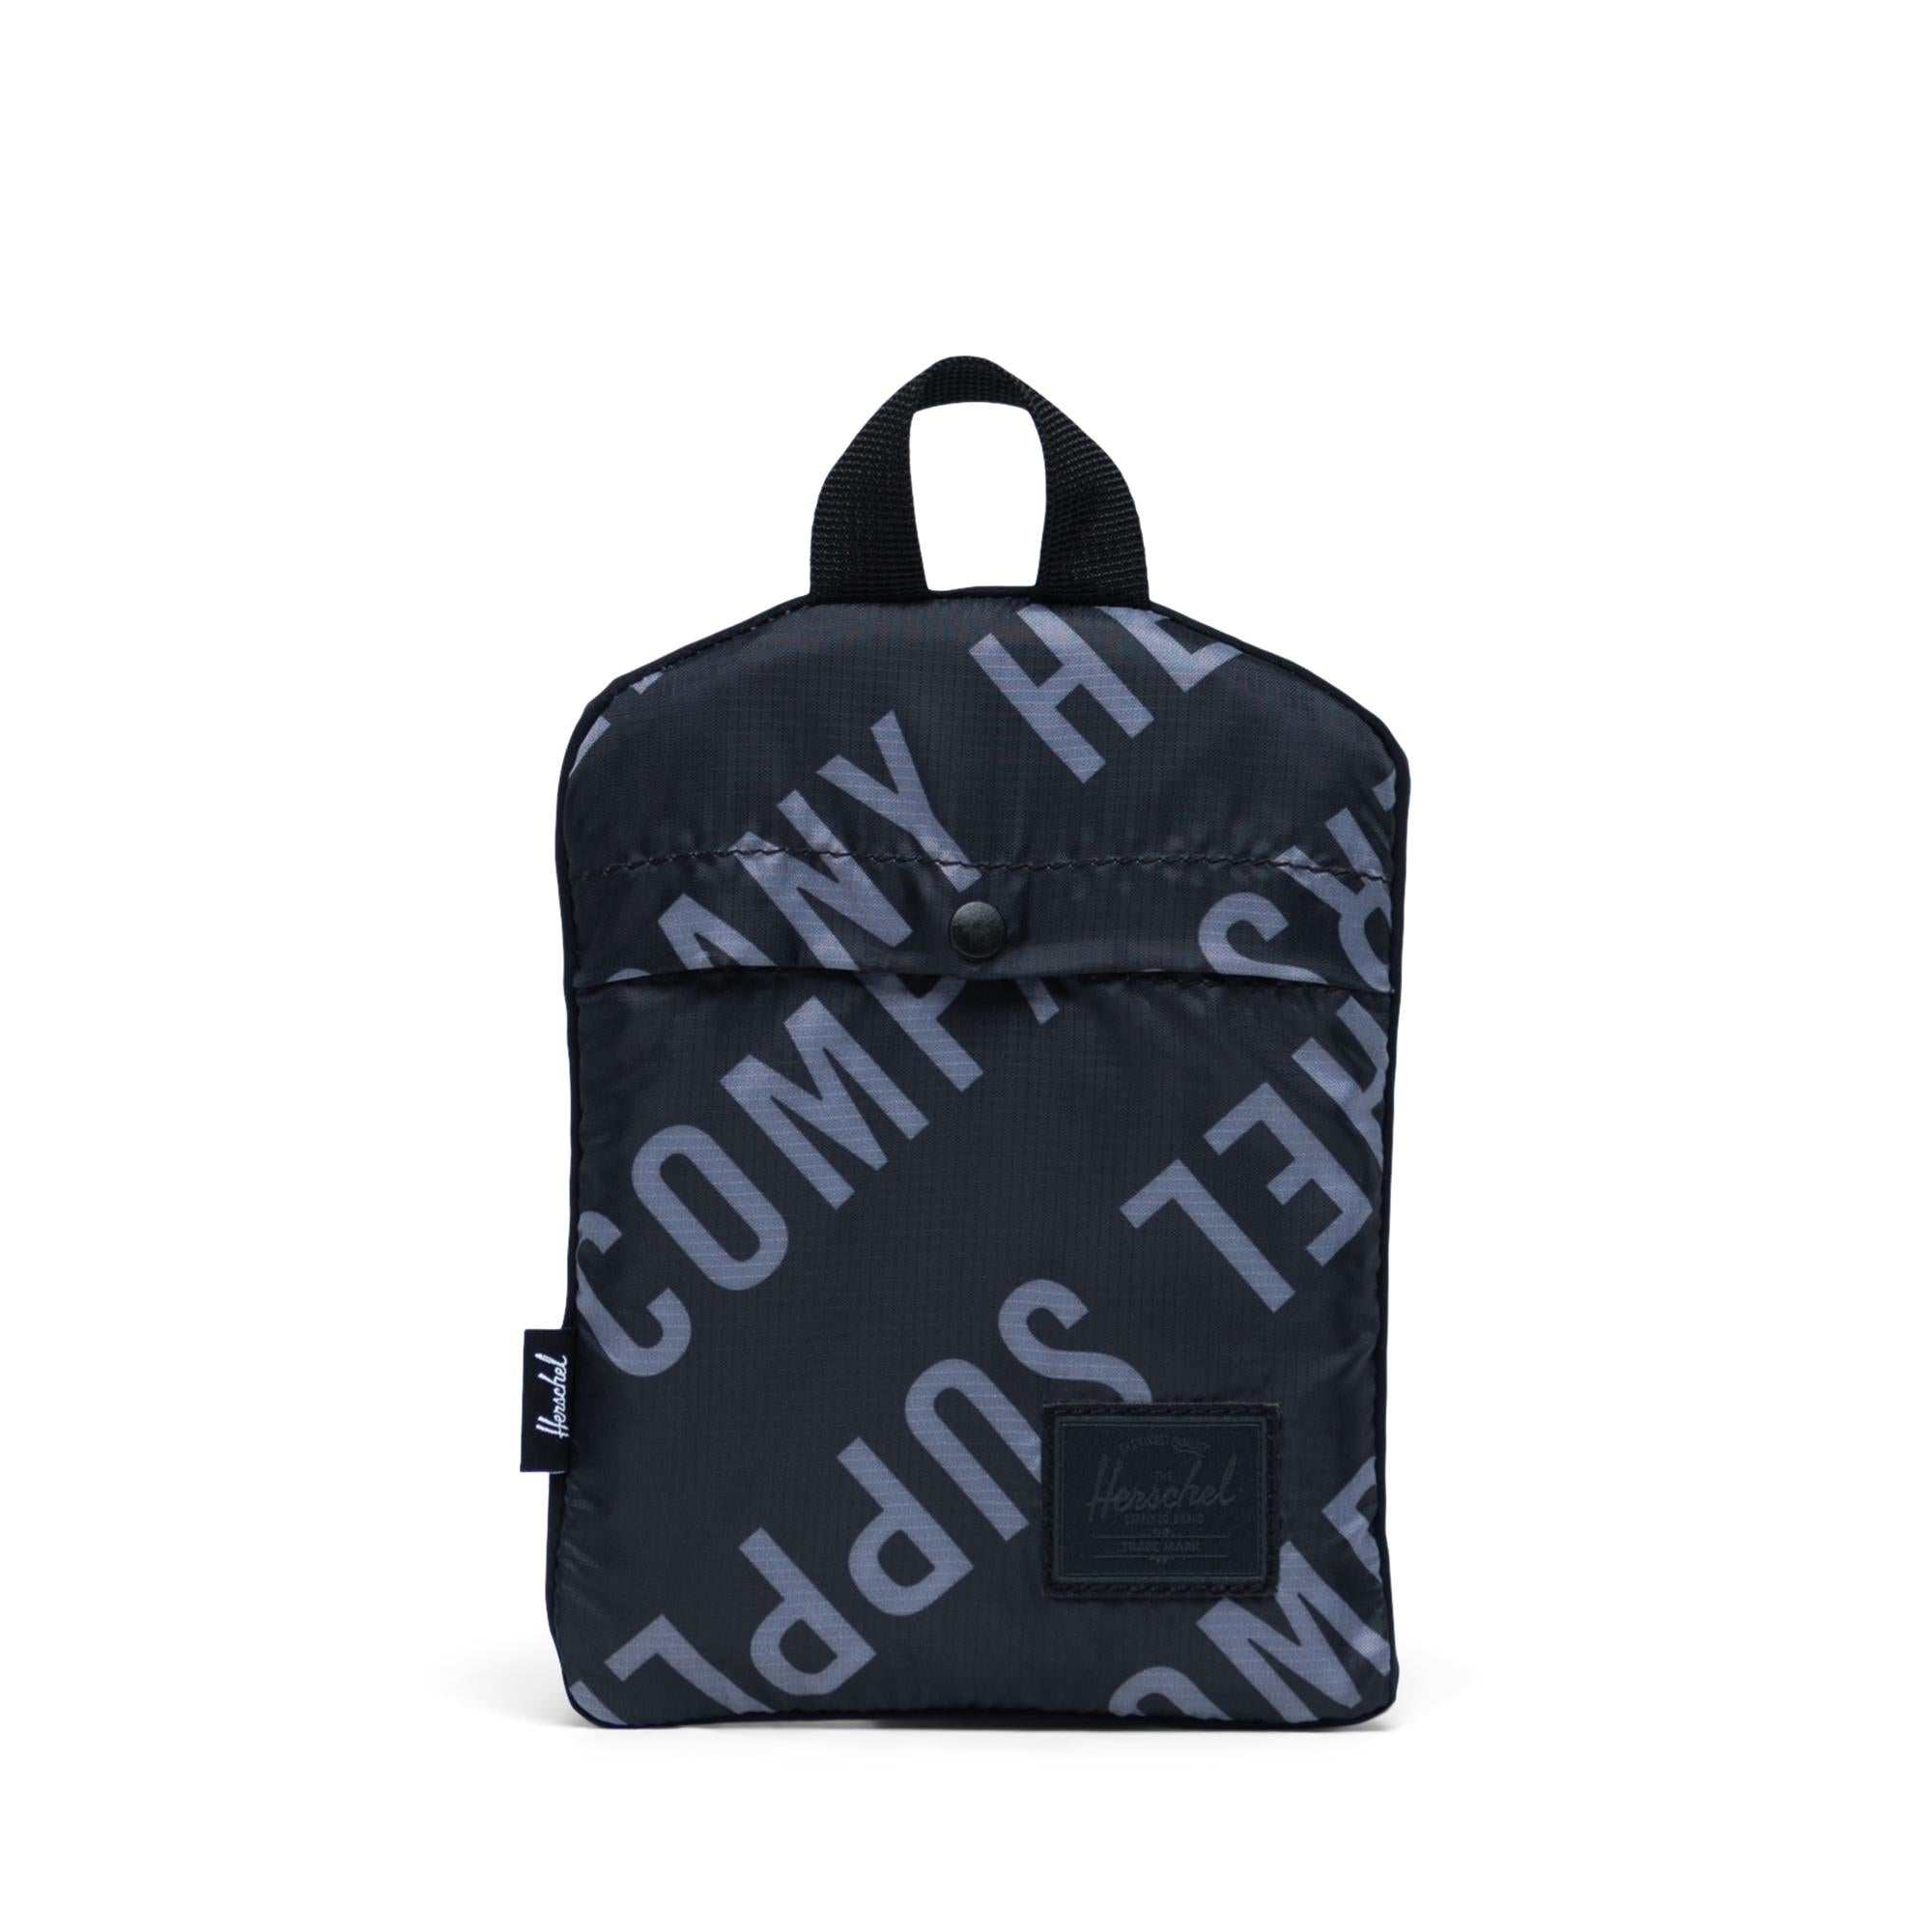 Herschel Supply Packable Duffle Roll Roll Call Black / Sharkskin Duffle Bag